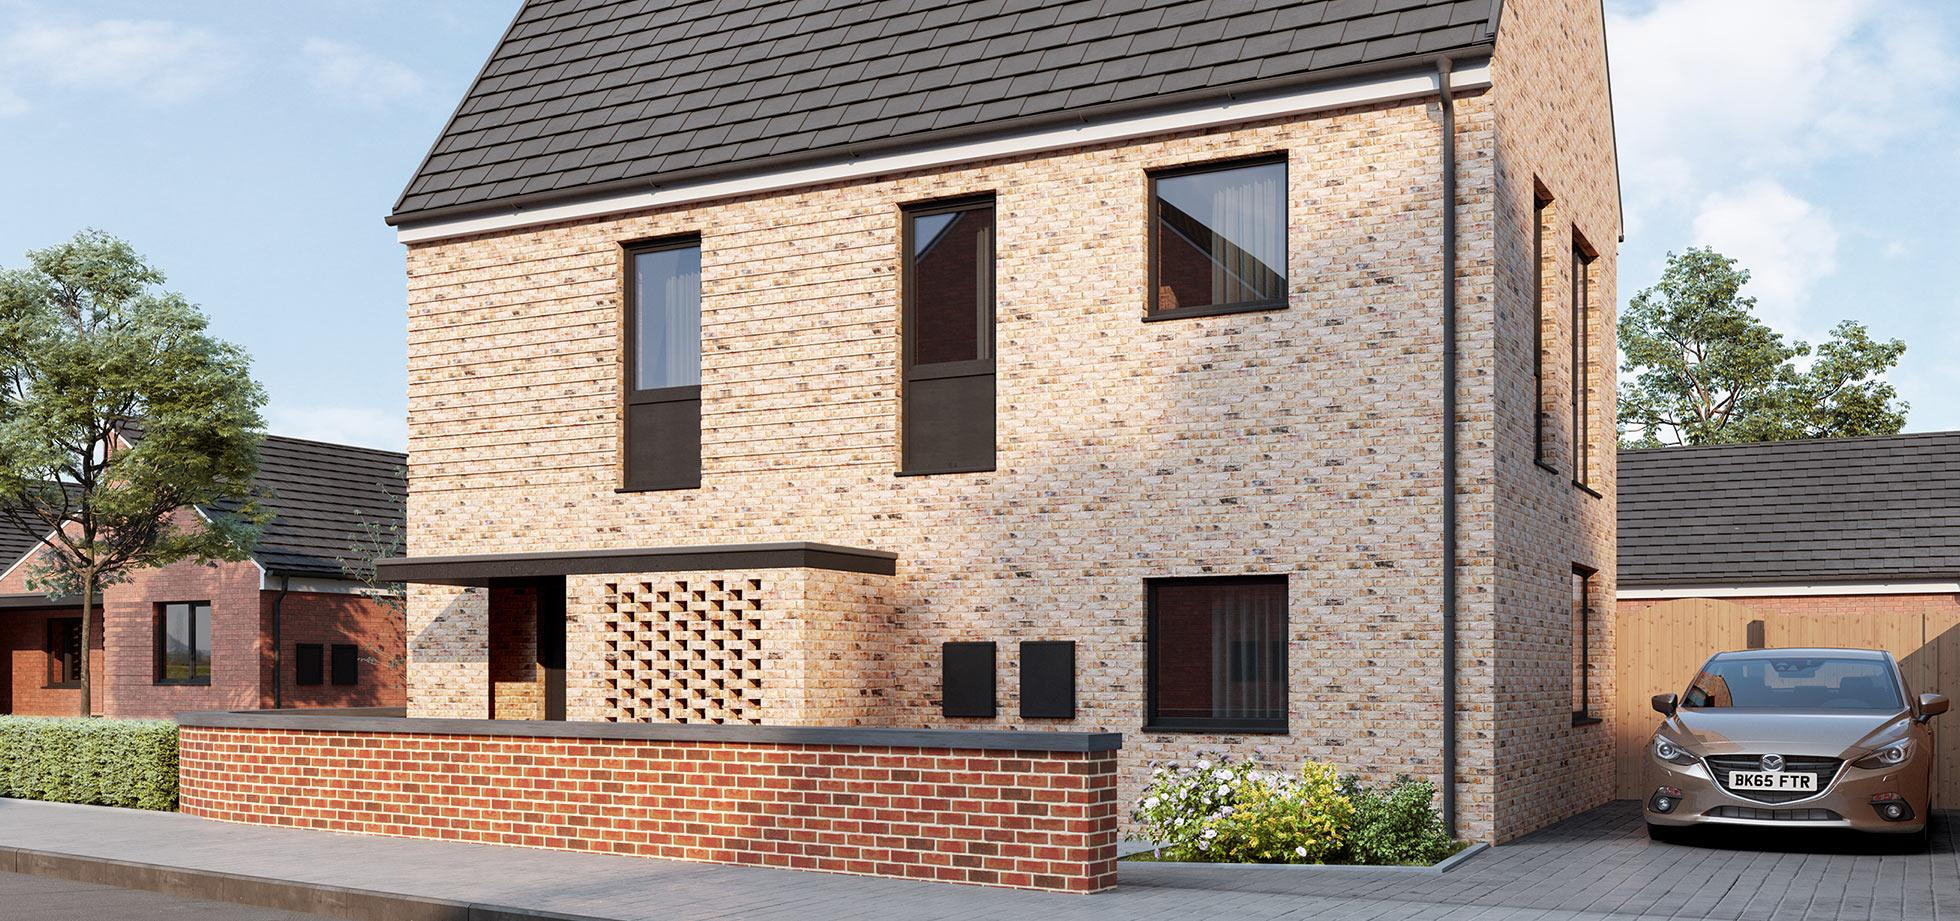 An image of 1 house from the Shape Homes York housing development